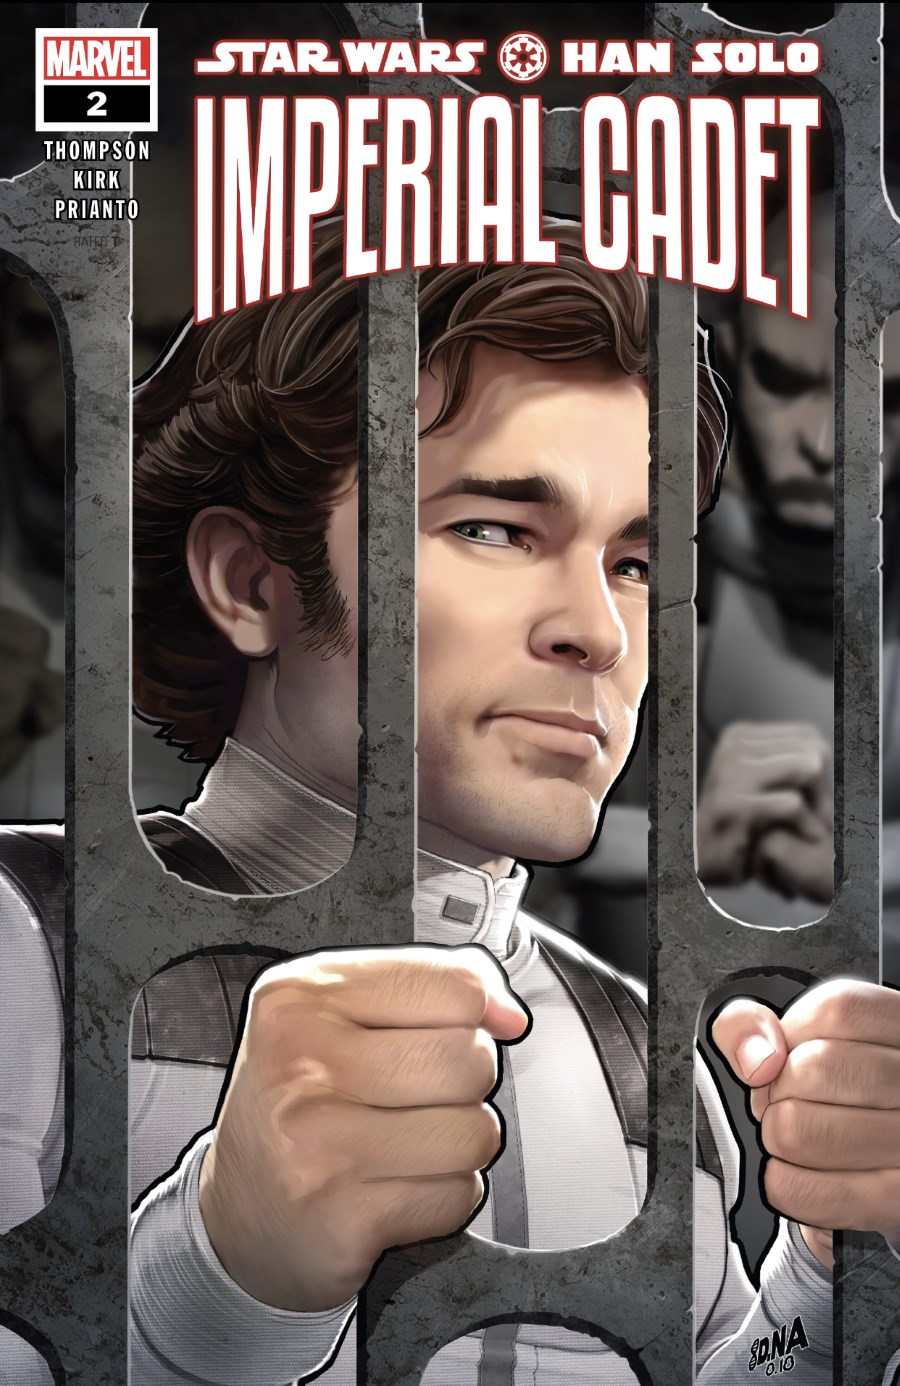 Star Wars: Han Solo: Imperial Cadet #2 - Cover